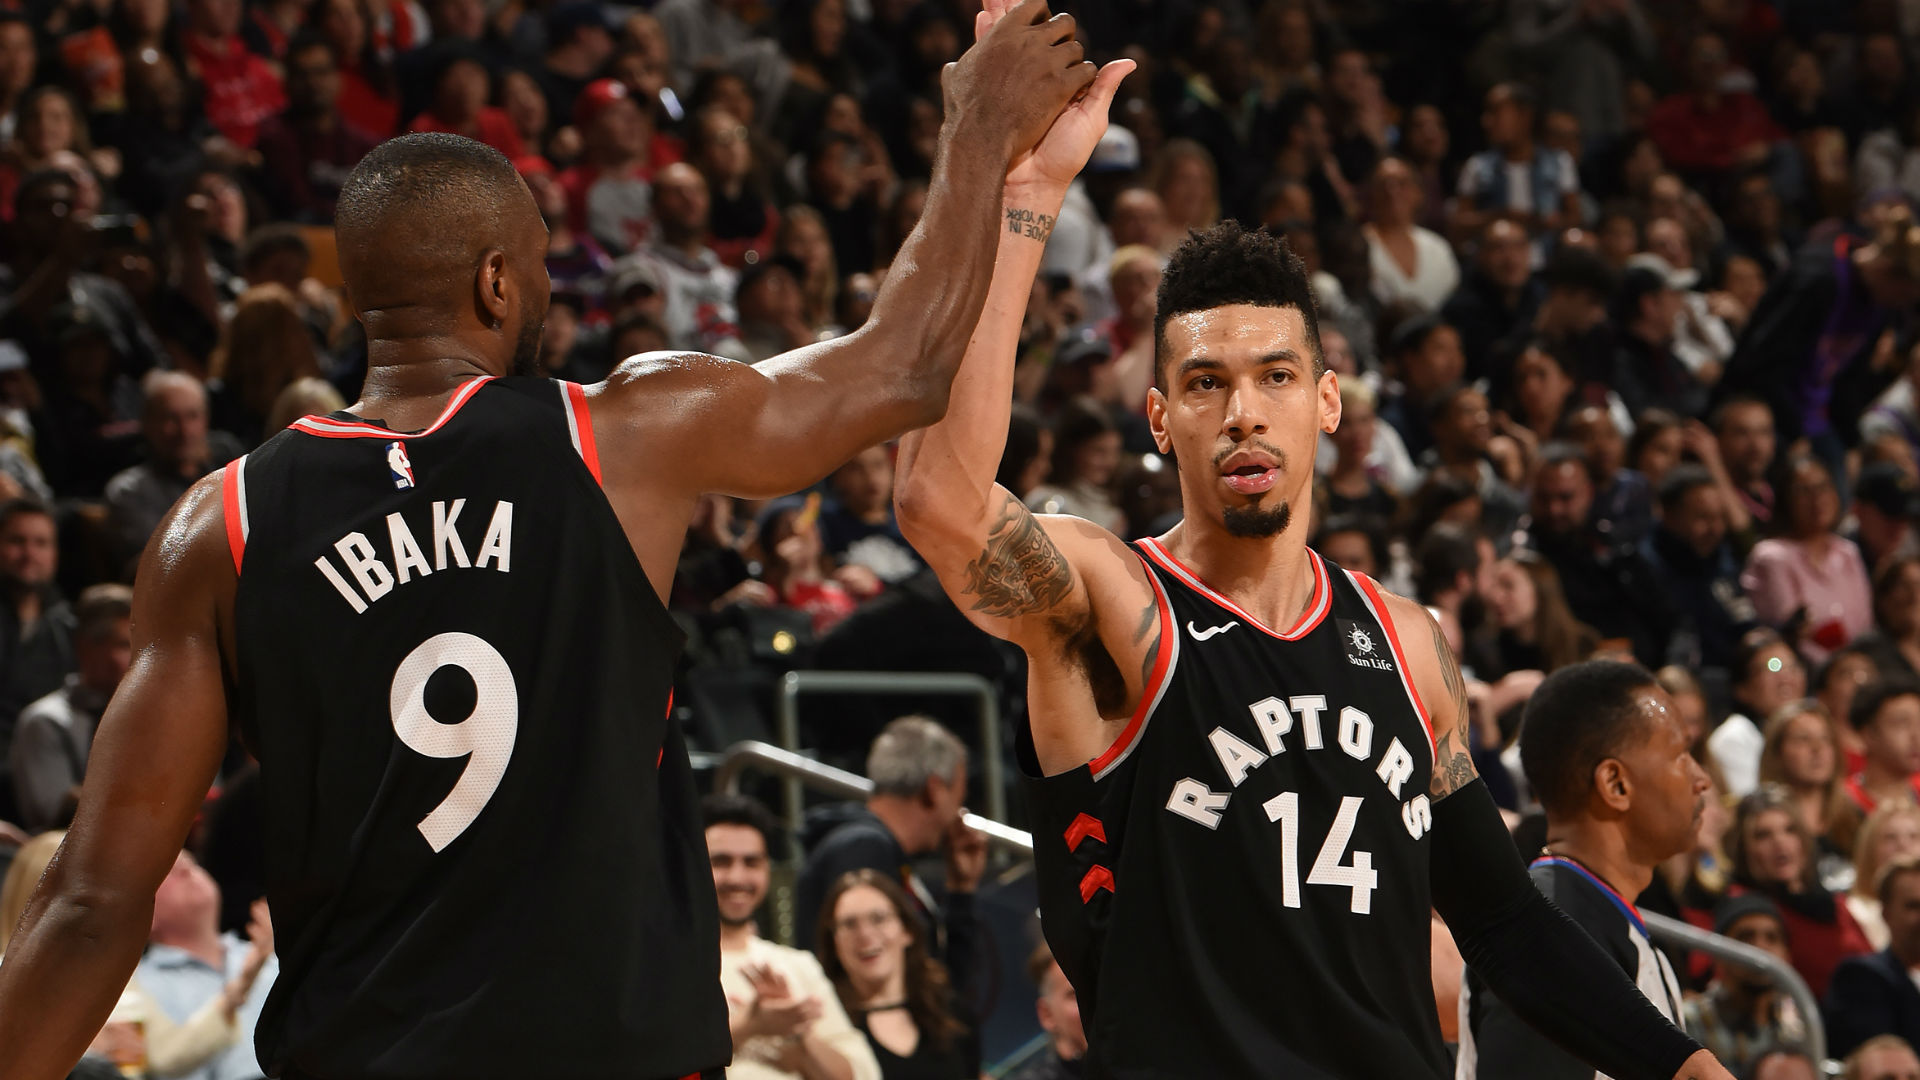 Raptors News: Danny Green Scores 24 Points As Toronto Raptors Cruise To